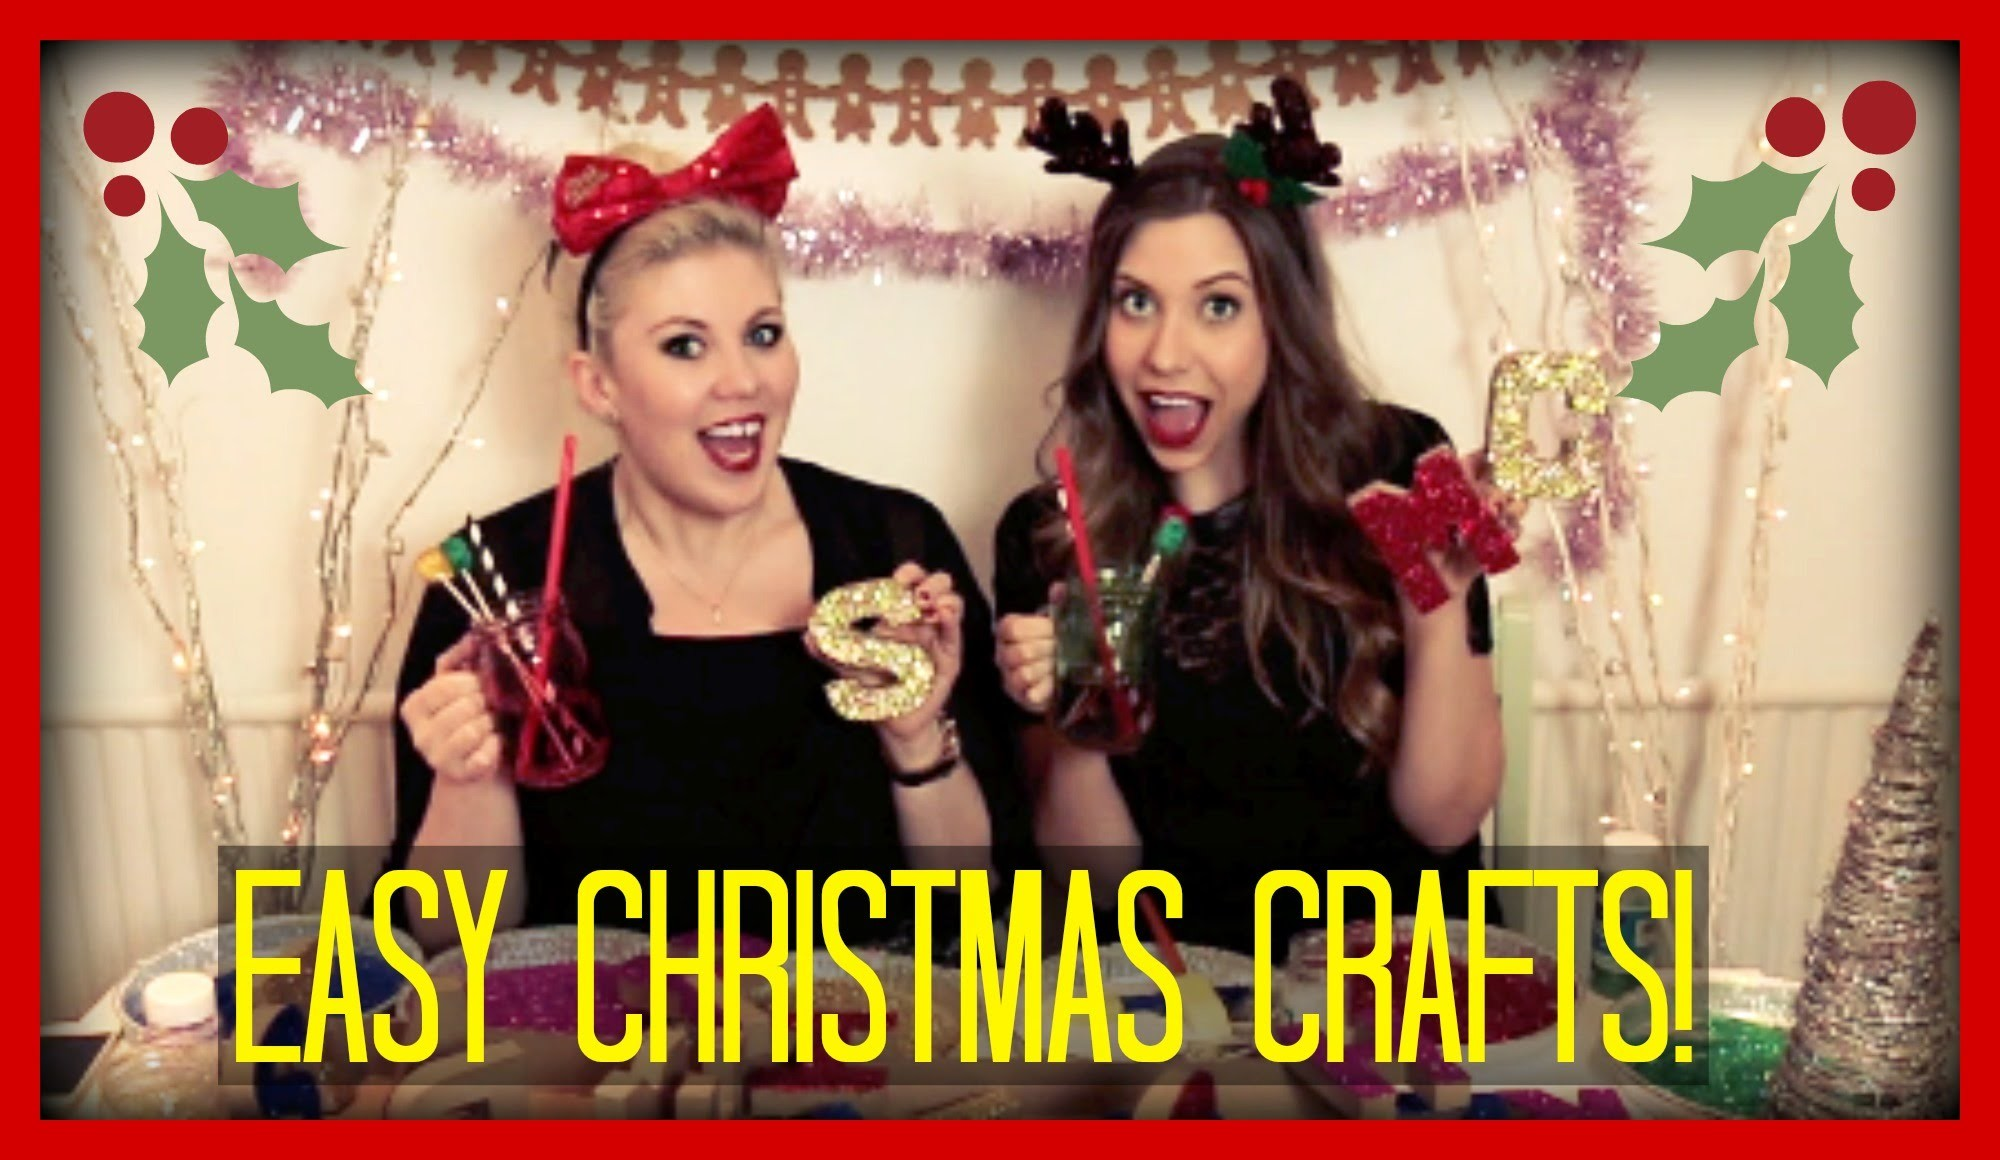 Two Girls, One (easy,festive) Craft! | Sprinkle of Glitter